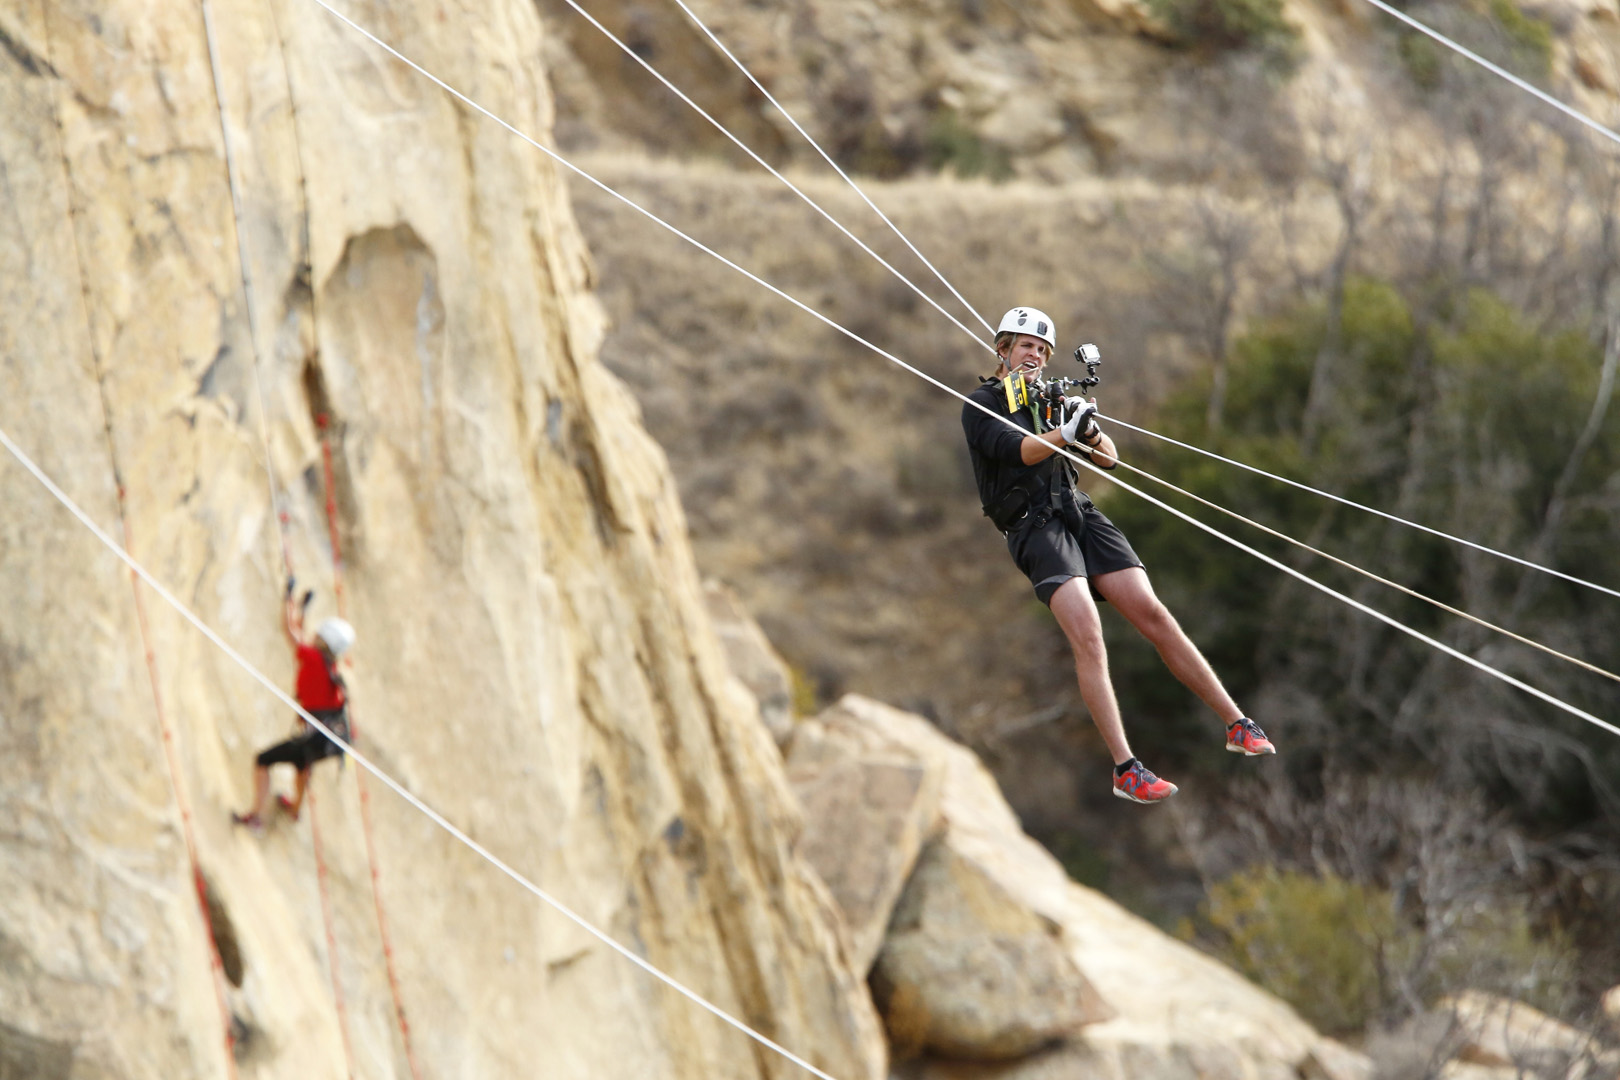 2. Since your high-flying challenges on The Amazing Race, are you both still afraid of heights?